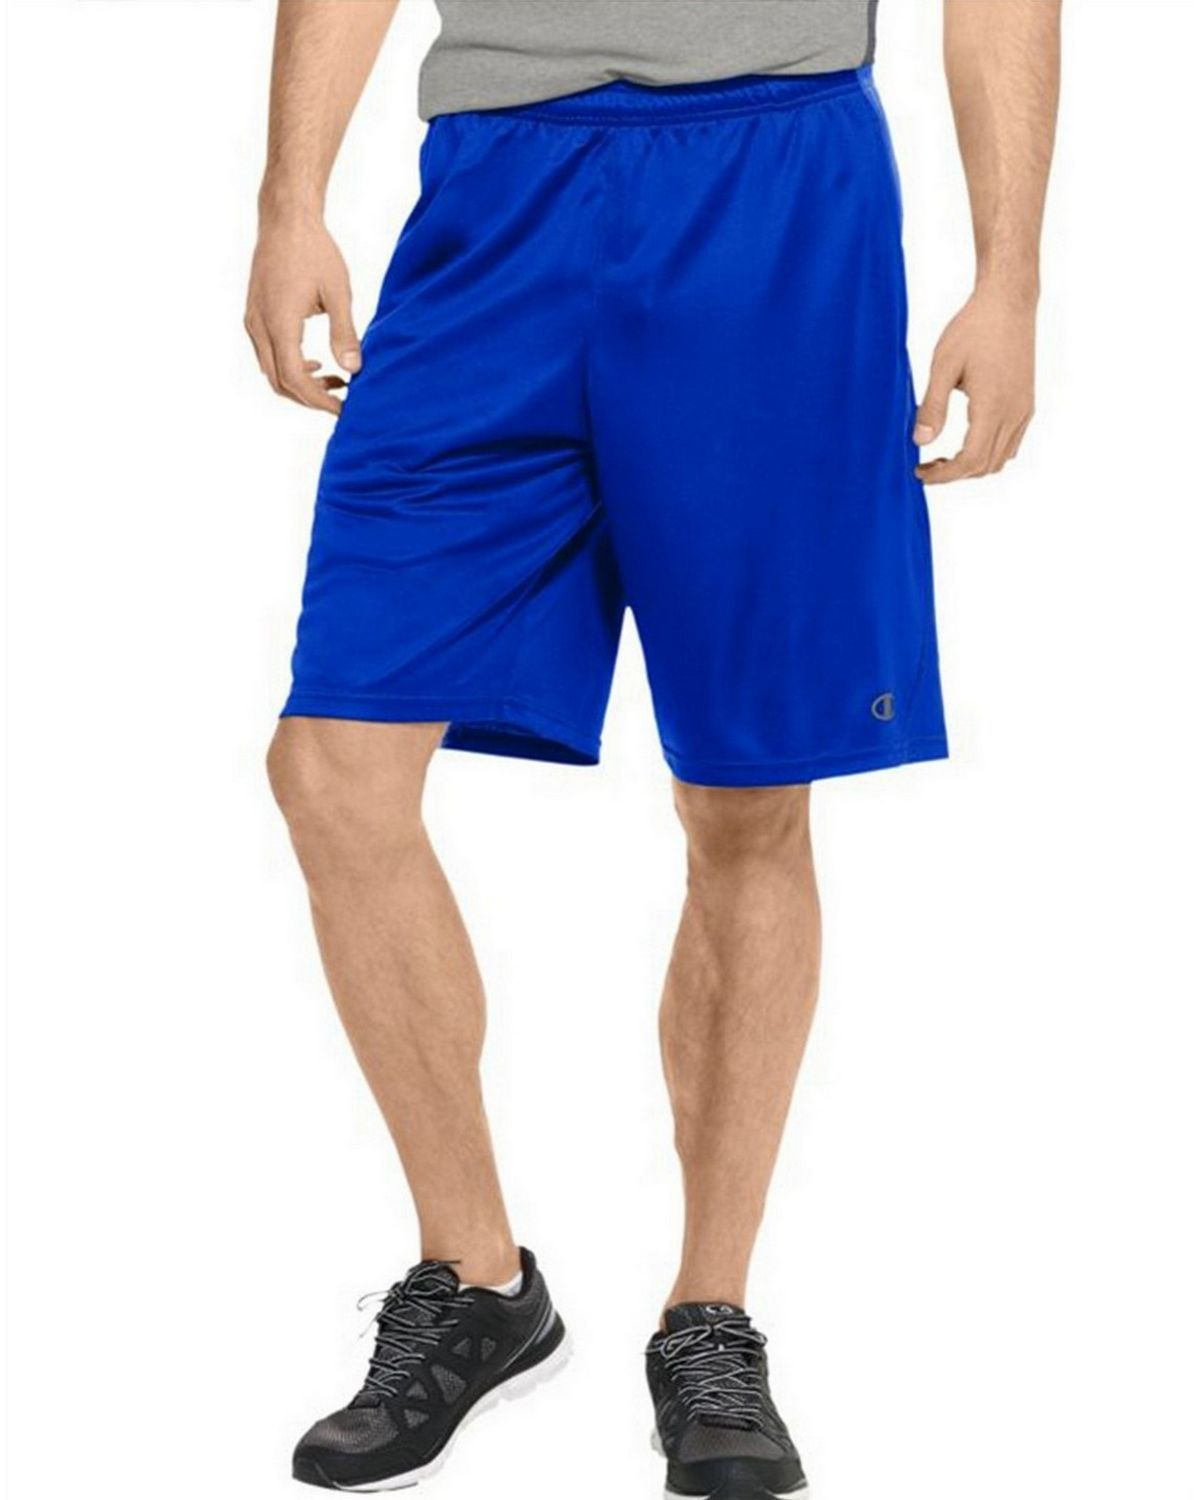 Champion 86703 Vapor PowerTrain Knit Shorts - Awesome Blue - S 86703